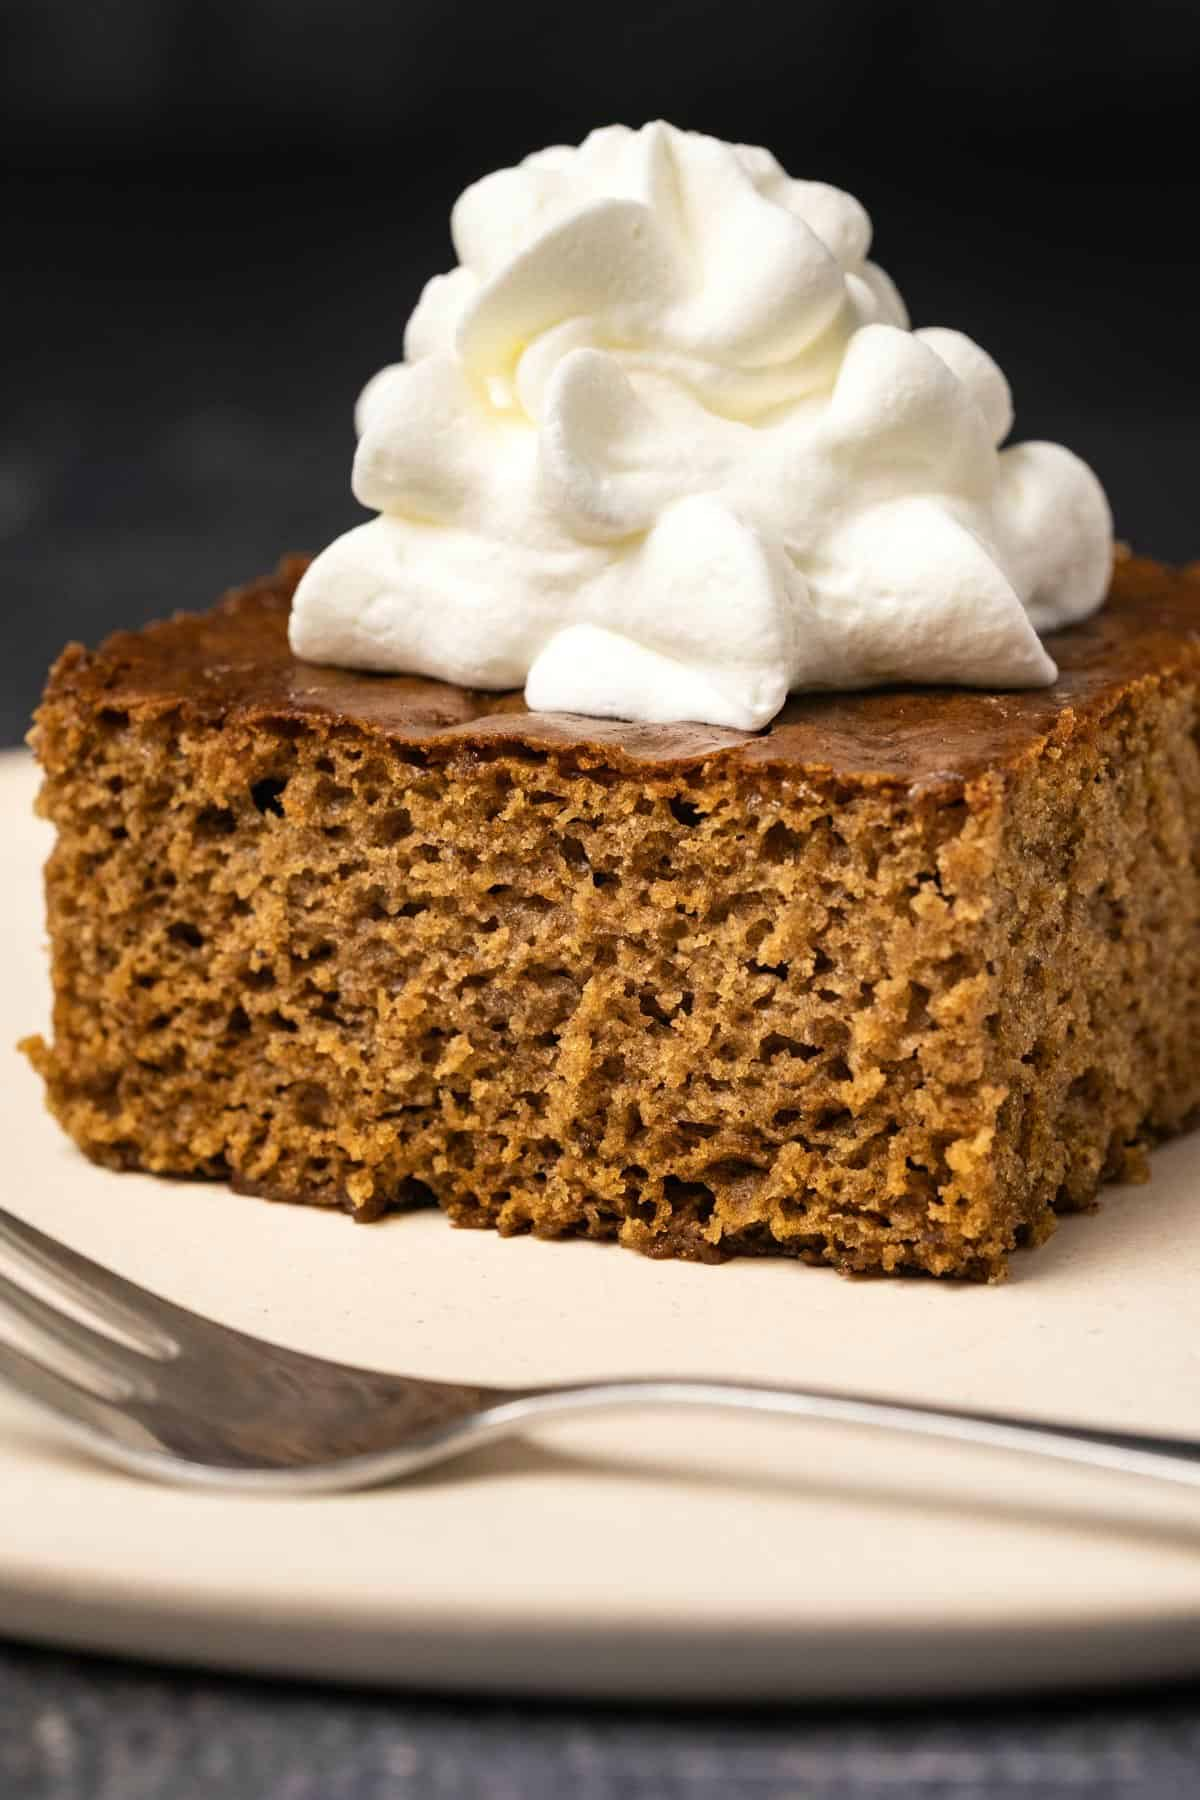 Slice of gingerbread with whipped cream on a white plate with a cake fork.